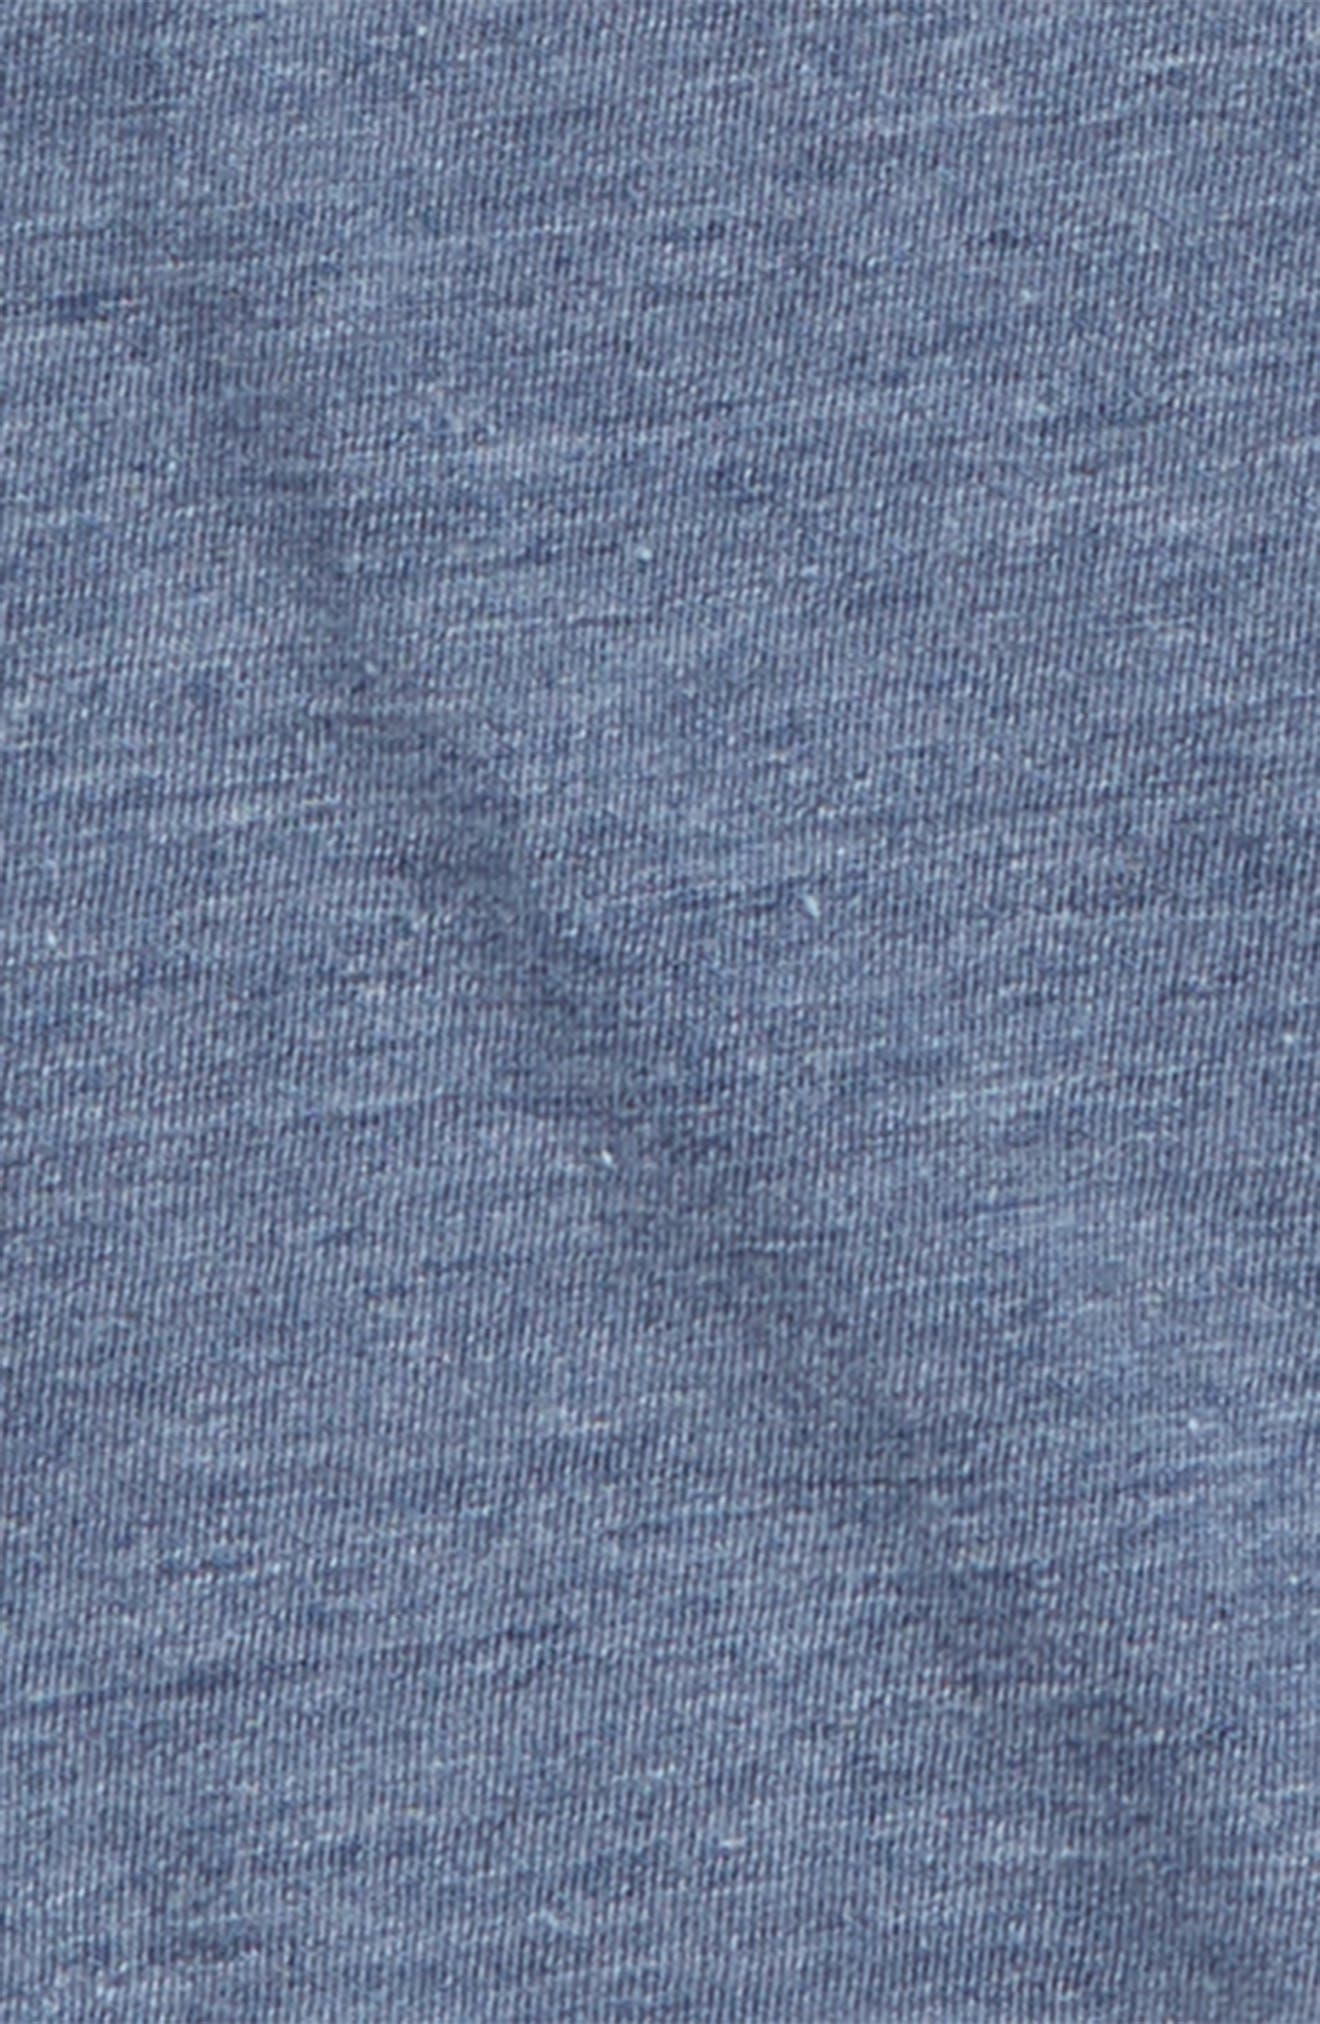 All Day Every Day T-Shirt,                             Alternate thumbnail 2, color,                             BLUE OASIS